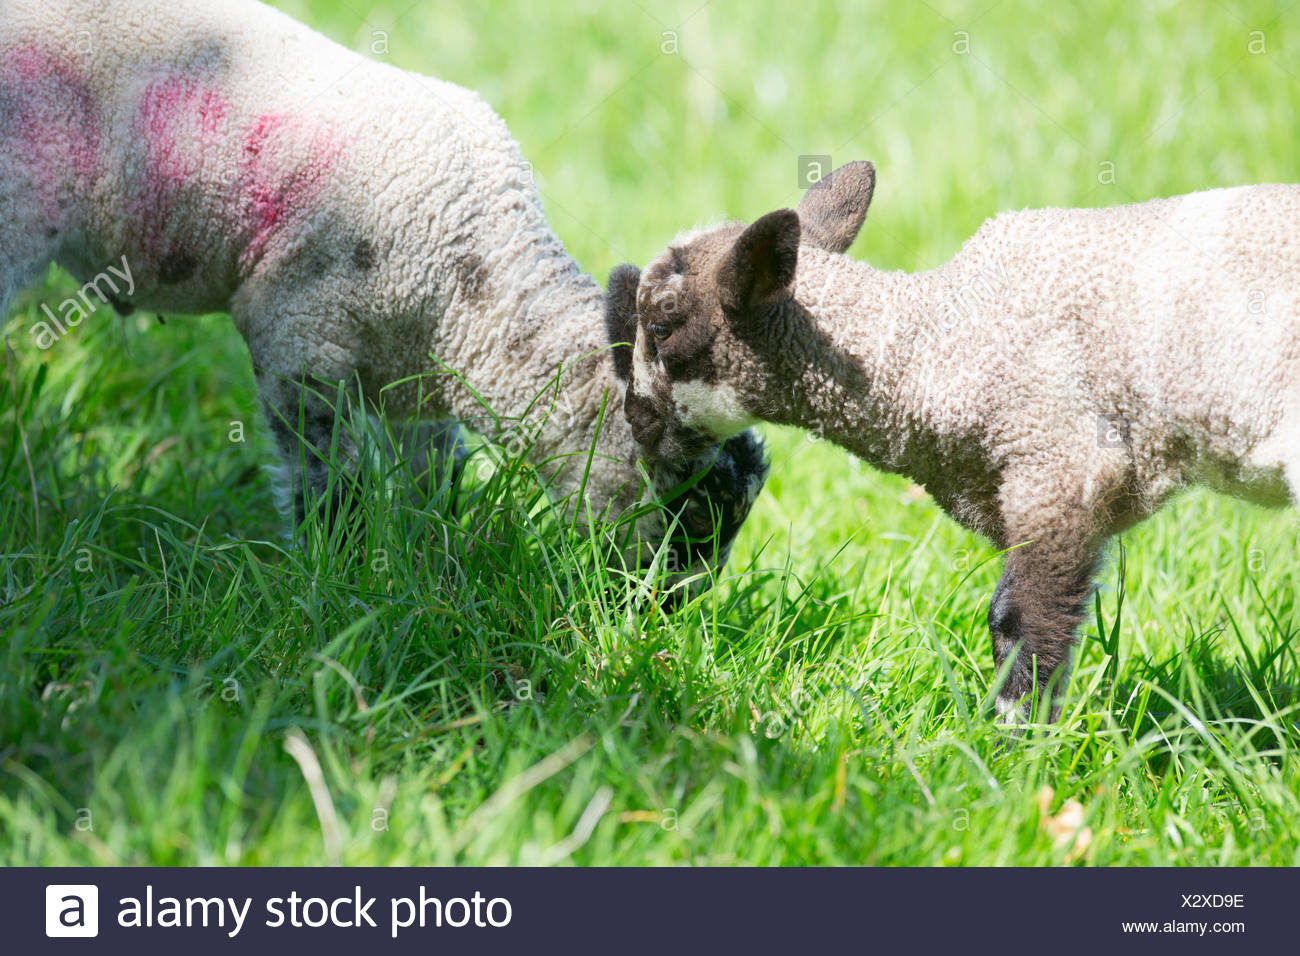 Lambs grazing in green spring grass - Stock Image